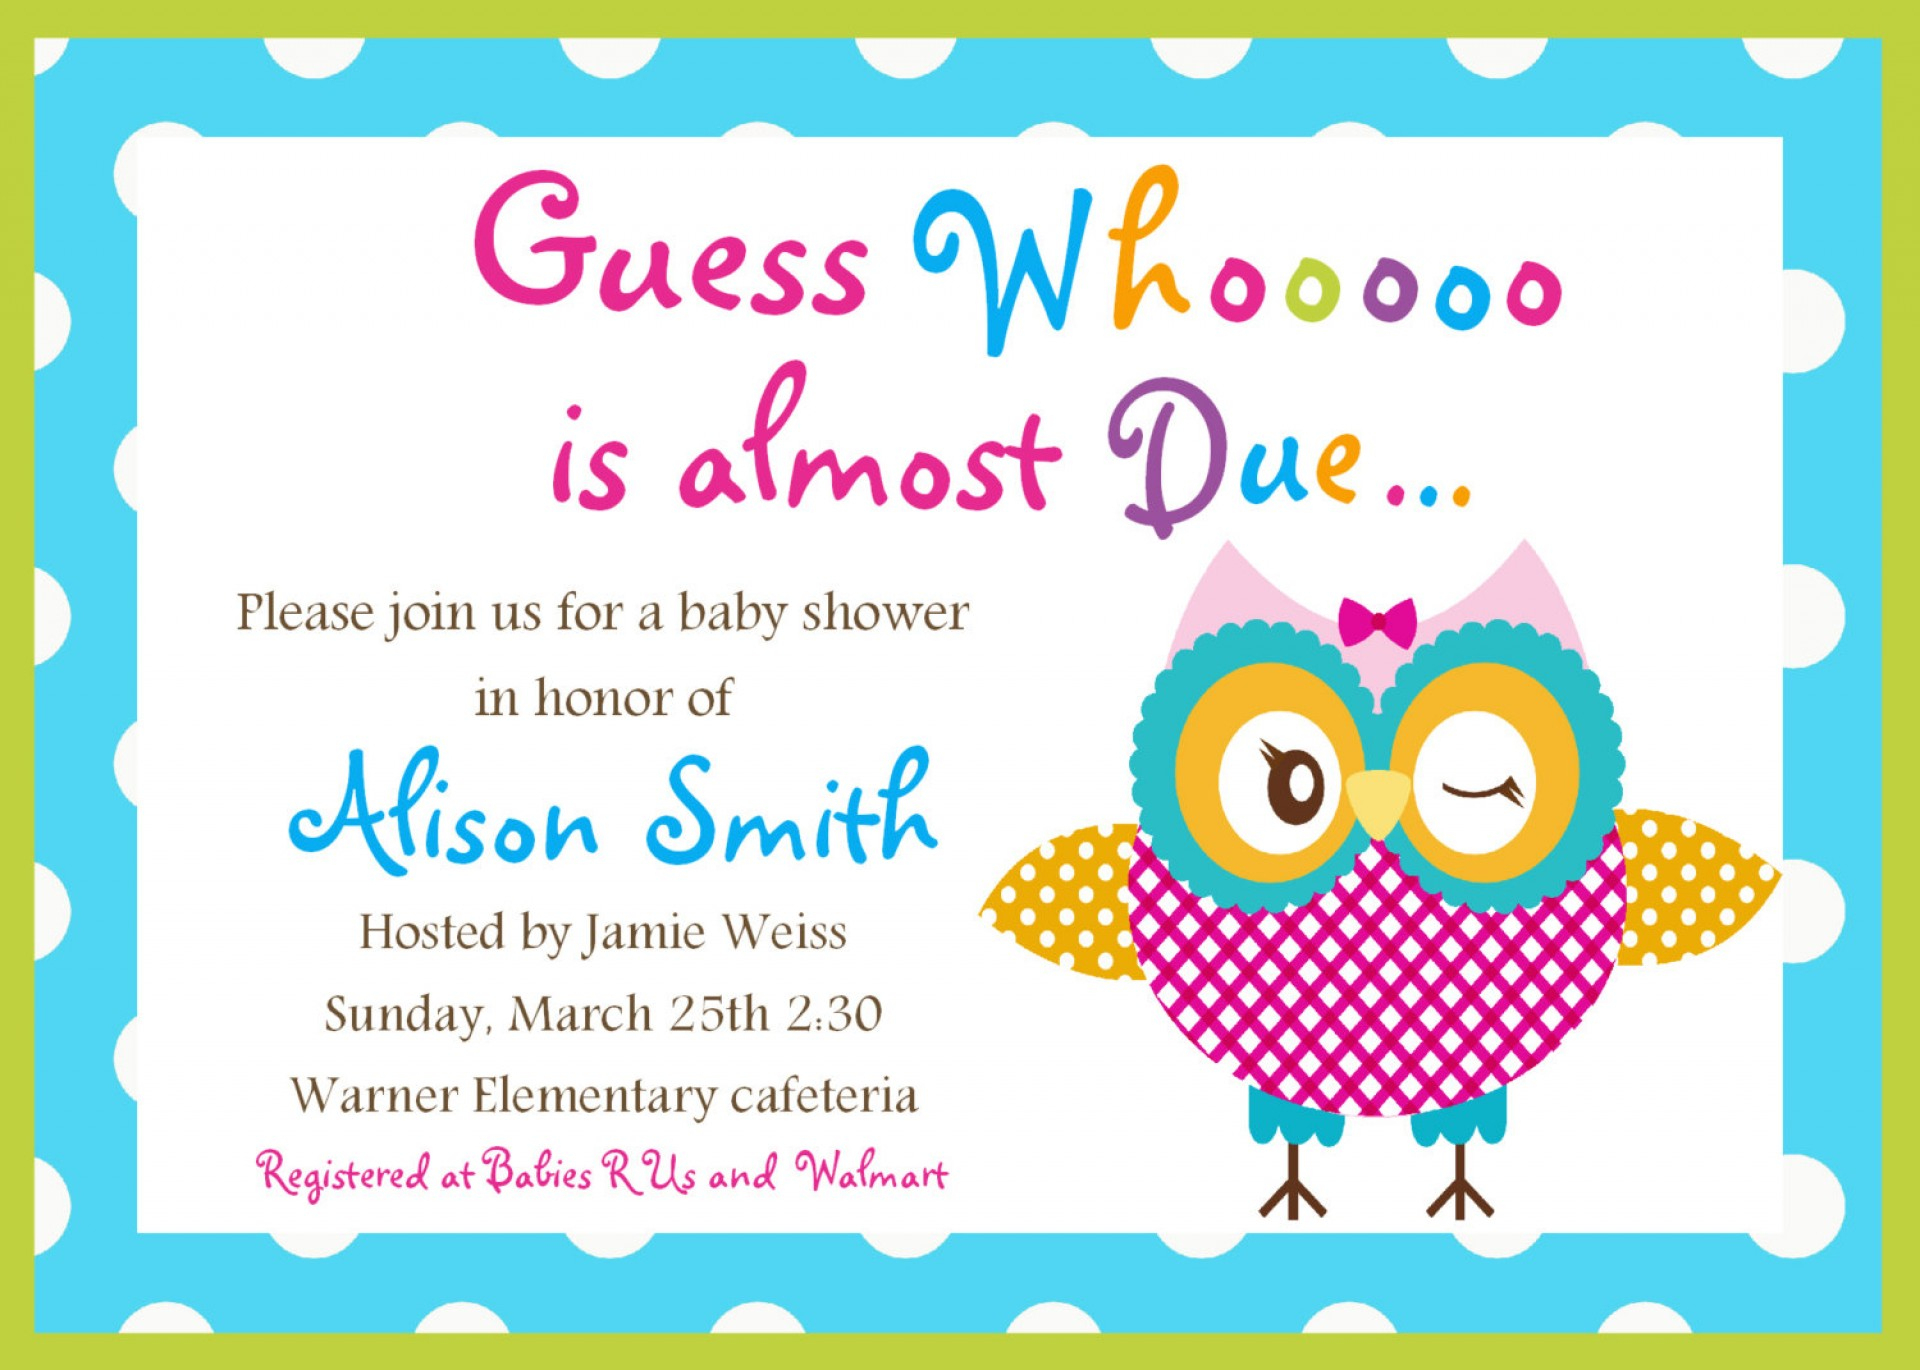 008 Free Printable Baby Shower Cards Card Templates Template - Free Printable Baby Shower Cards Templates